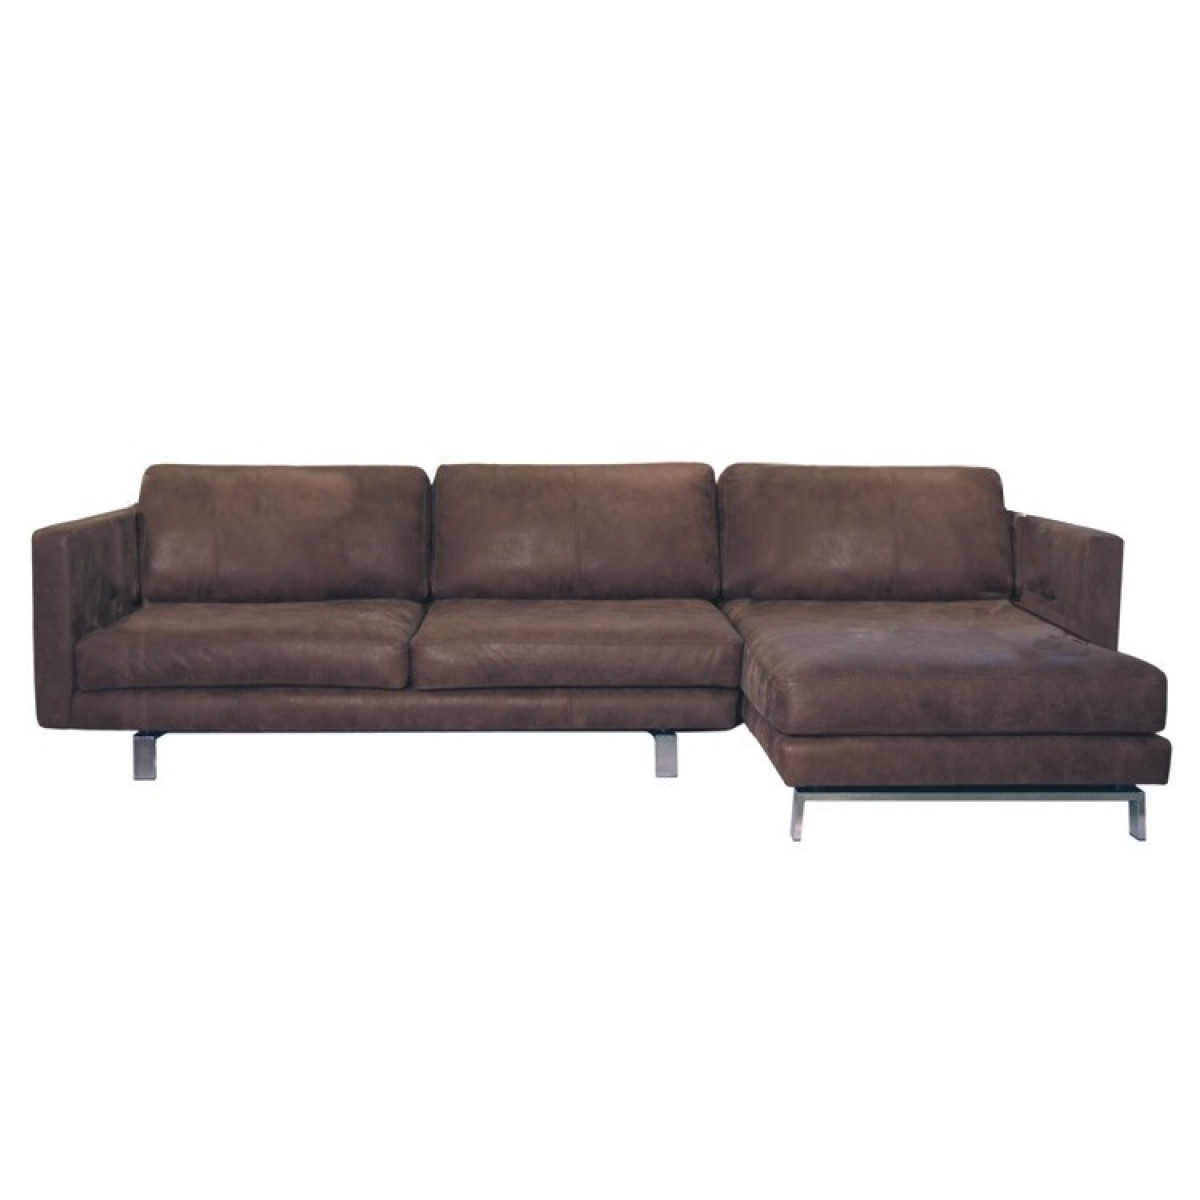 bonbeno sofa longchair i live design preisg nstig online moebel kaufen. Black Bedroom Furniture Sets. Home Design Ideas